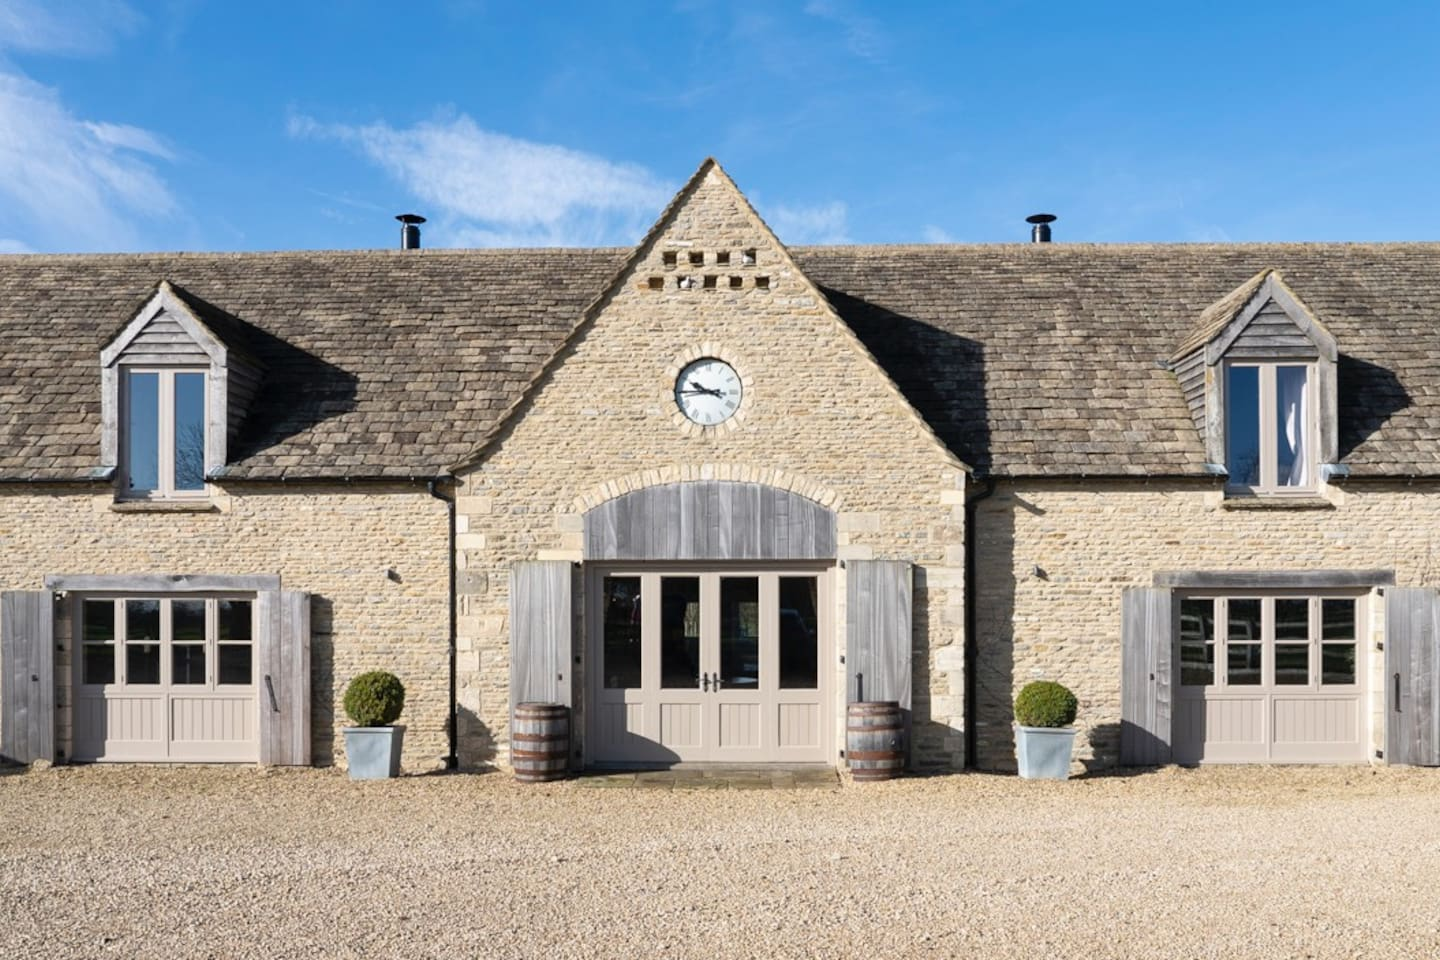 Poulton Hill Estate & Vineyard - offering luxury B & B, with the owners living next door.  3 bedrooms within the wing and huge open plan living/dining area across the ground floor for guests exclusive use.  Perfect for groups of friends.